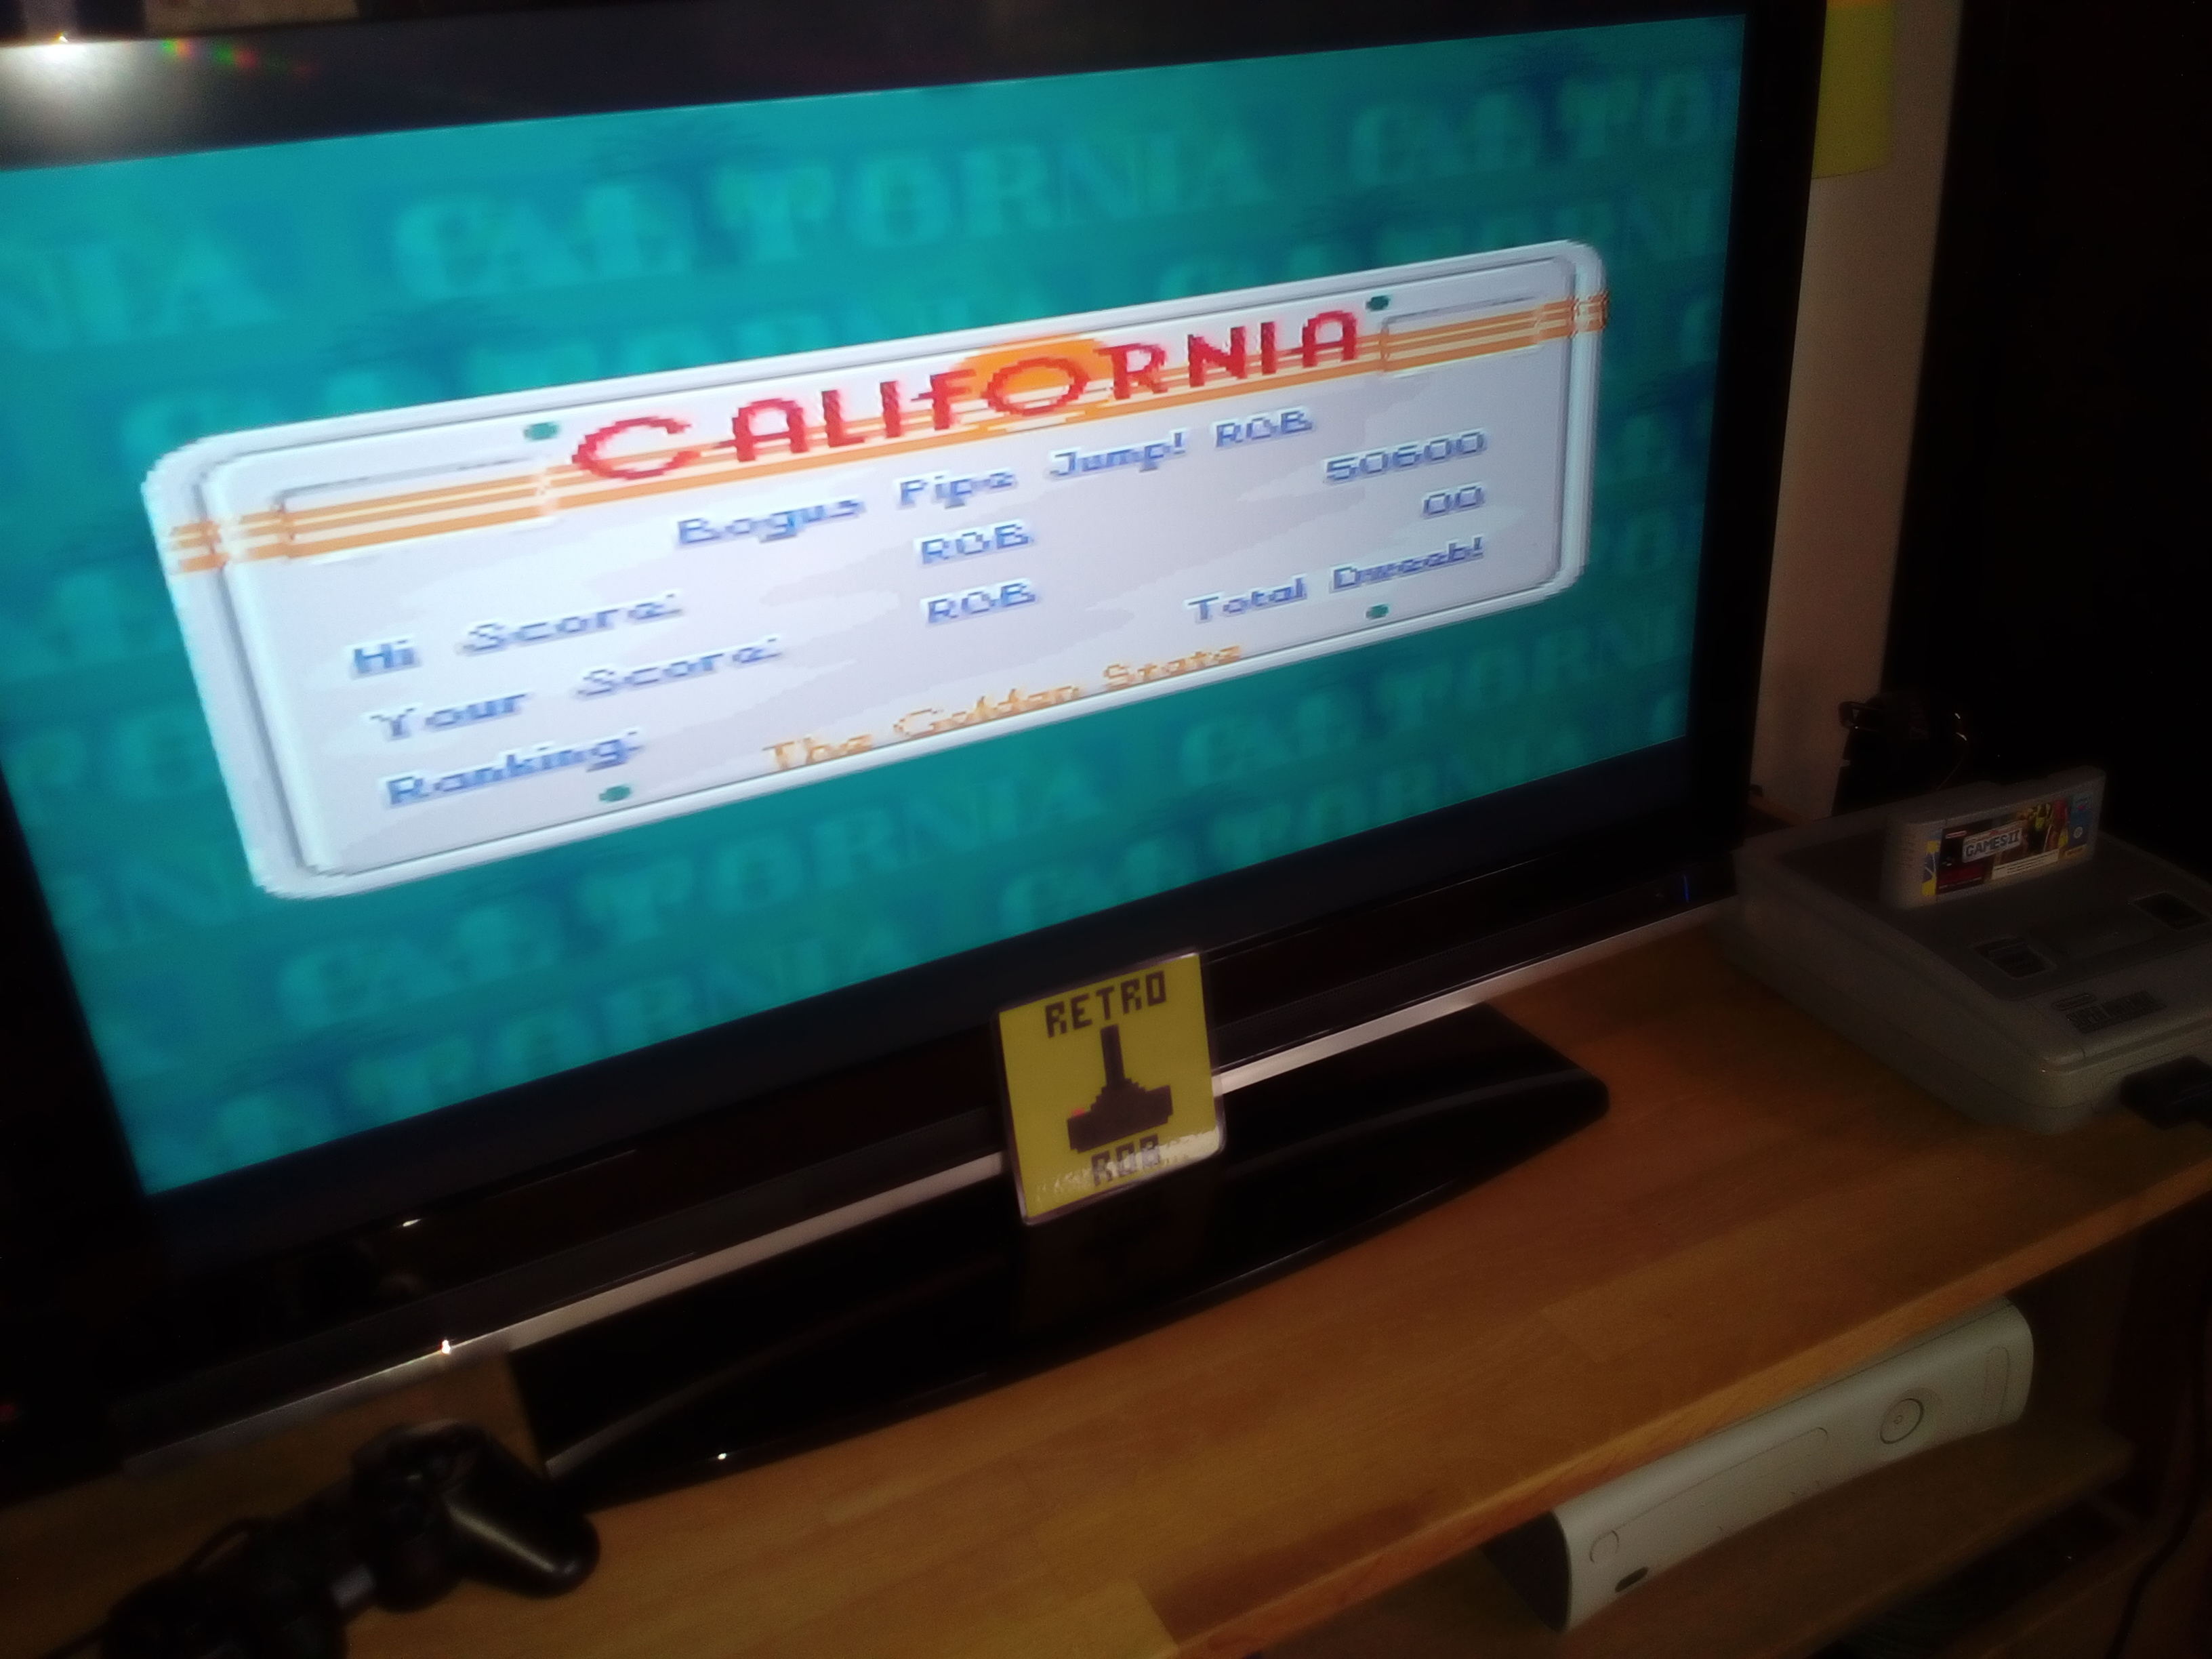 RetroRob: California Games II [Skateboarding] (SNES/Super Famicom) 50,600 points on 2019-03-09 03:59:39